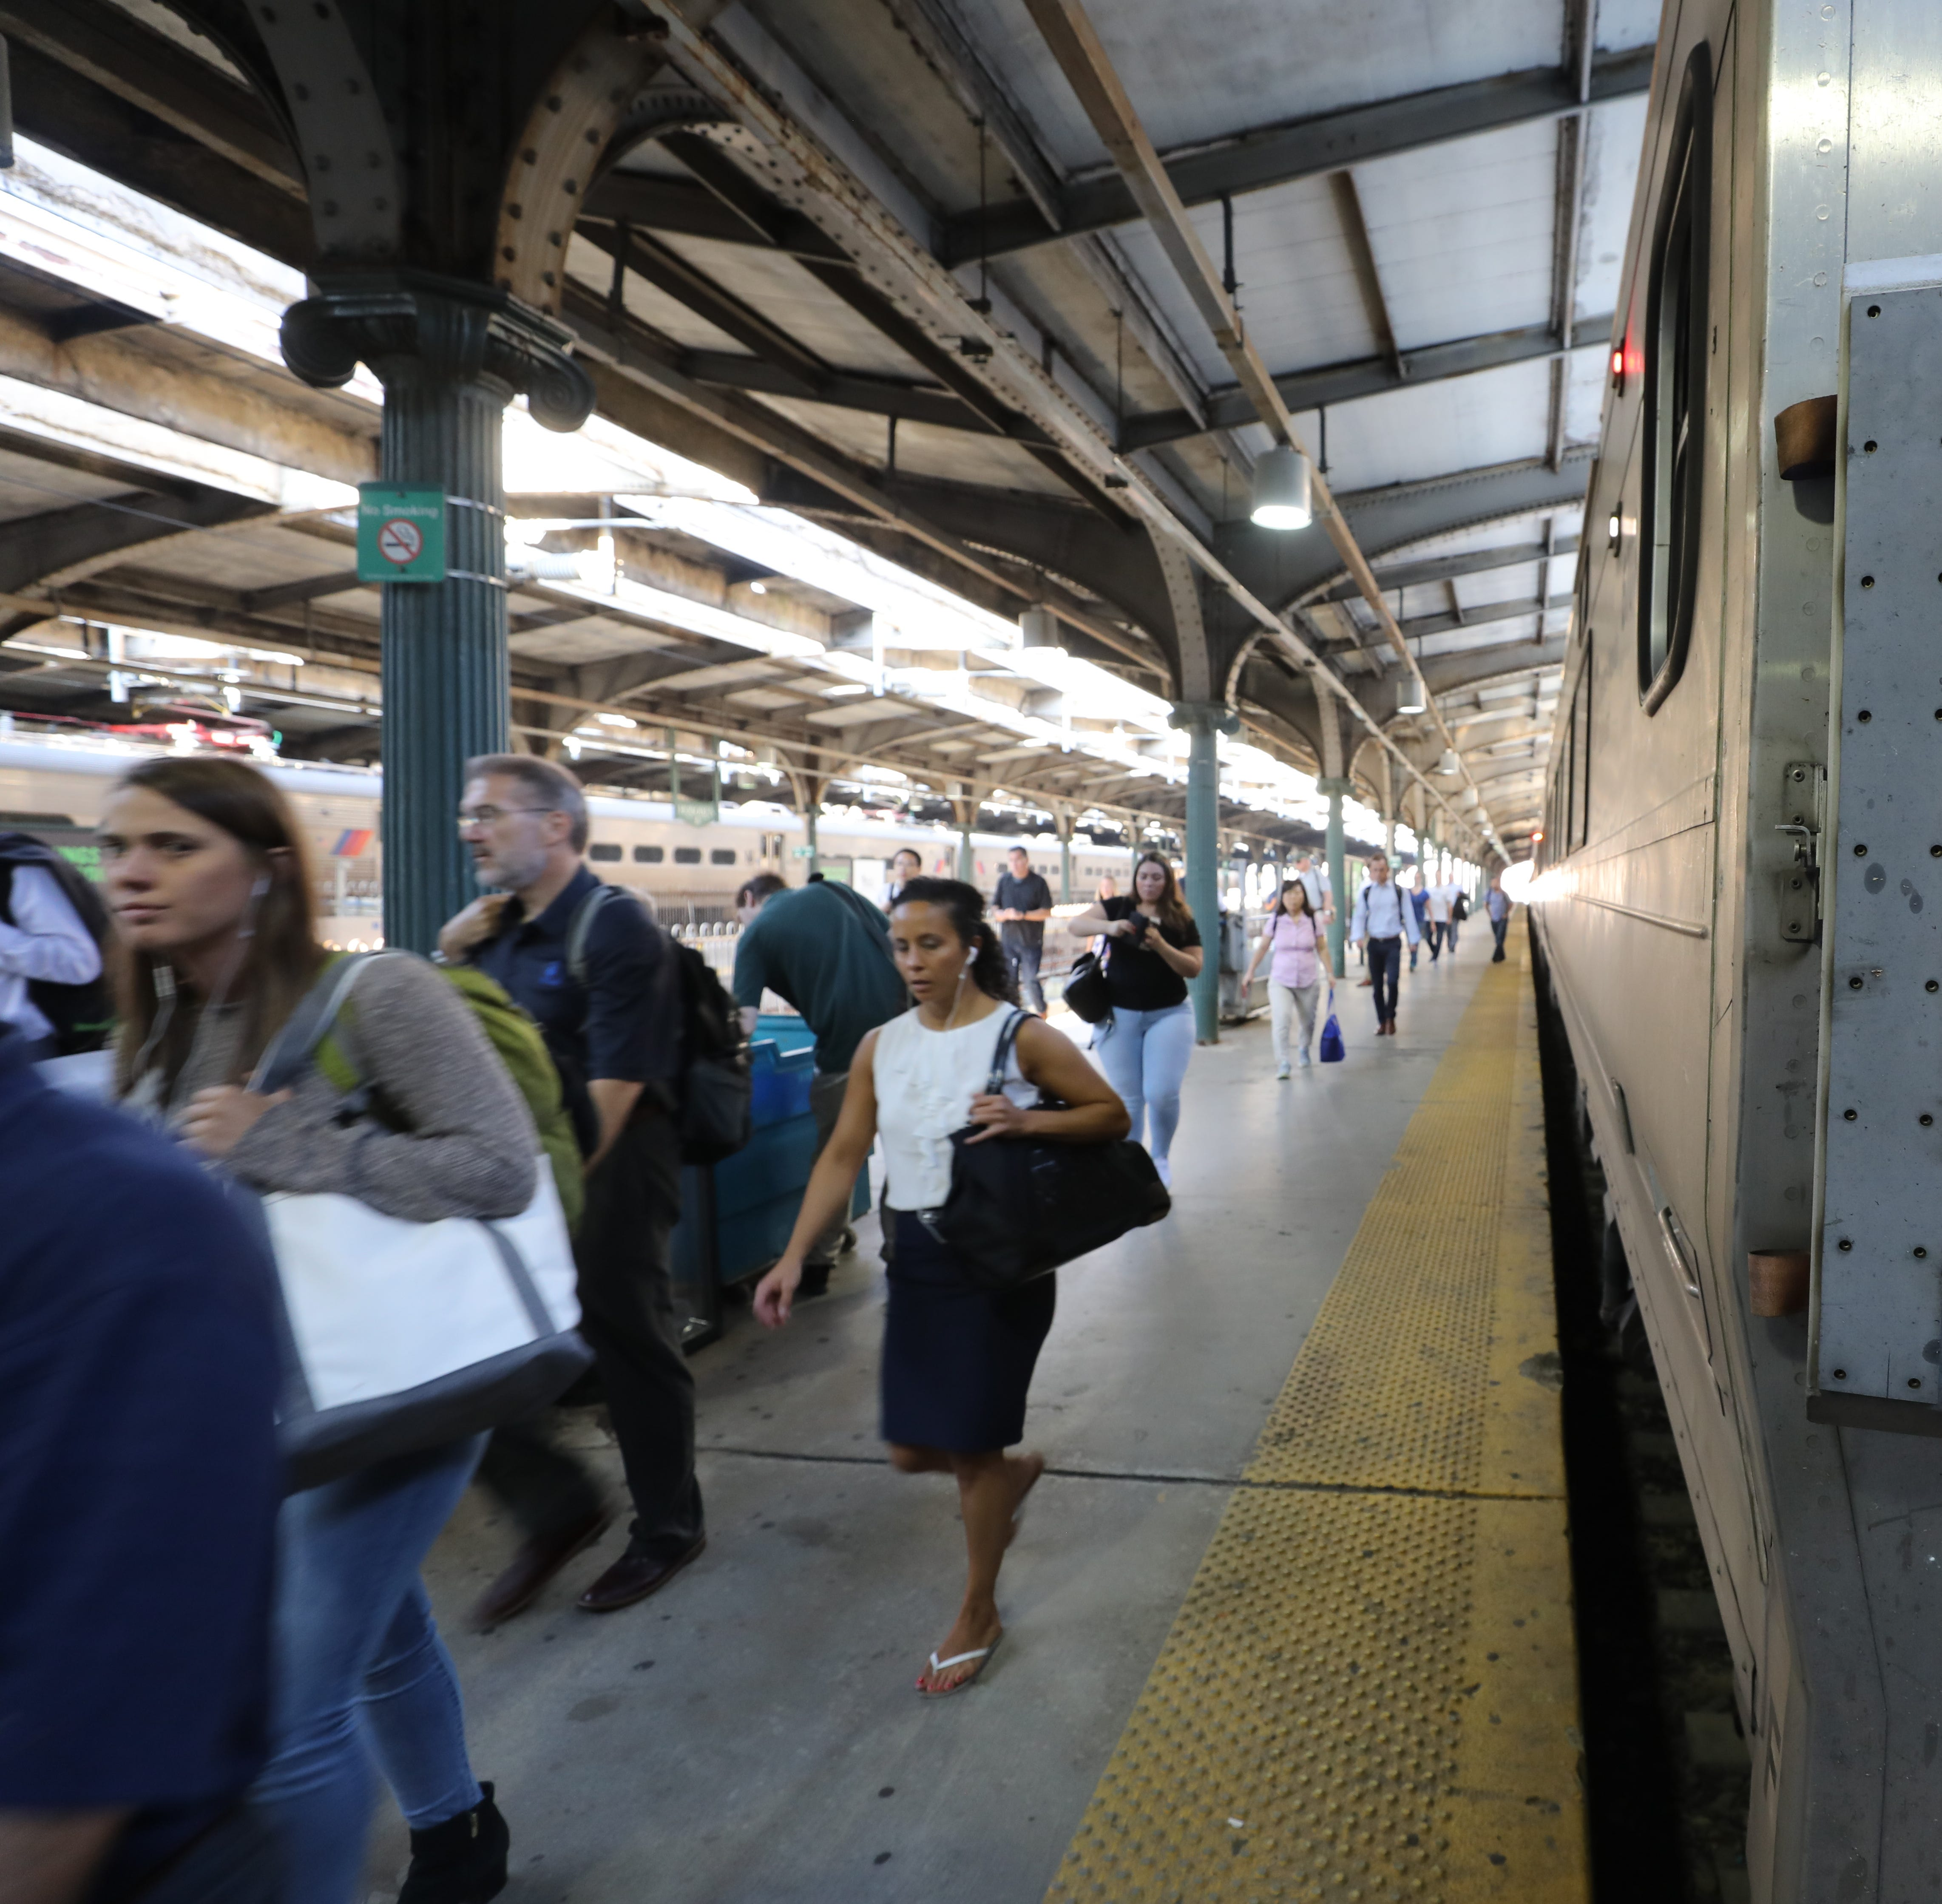 Opinion: NJ Transit's turnaround story should start in Hoboken